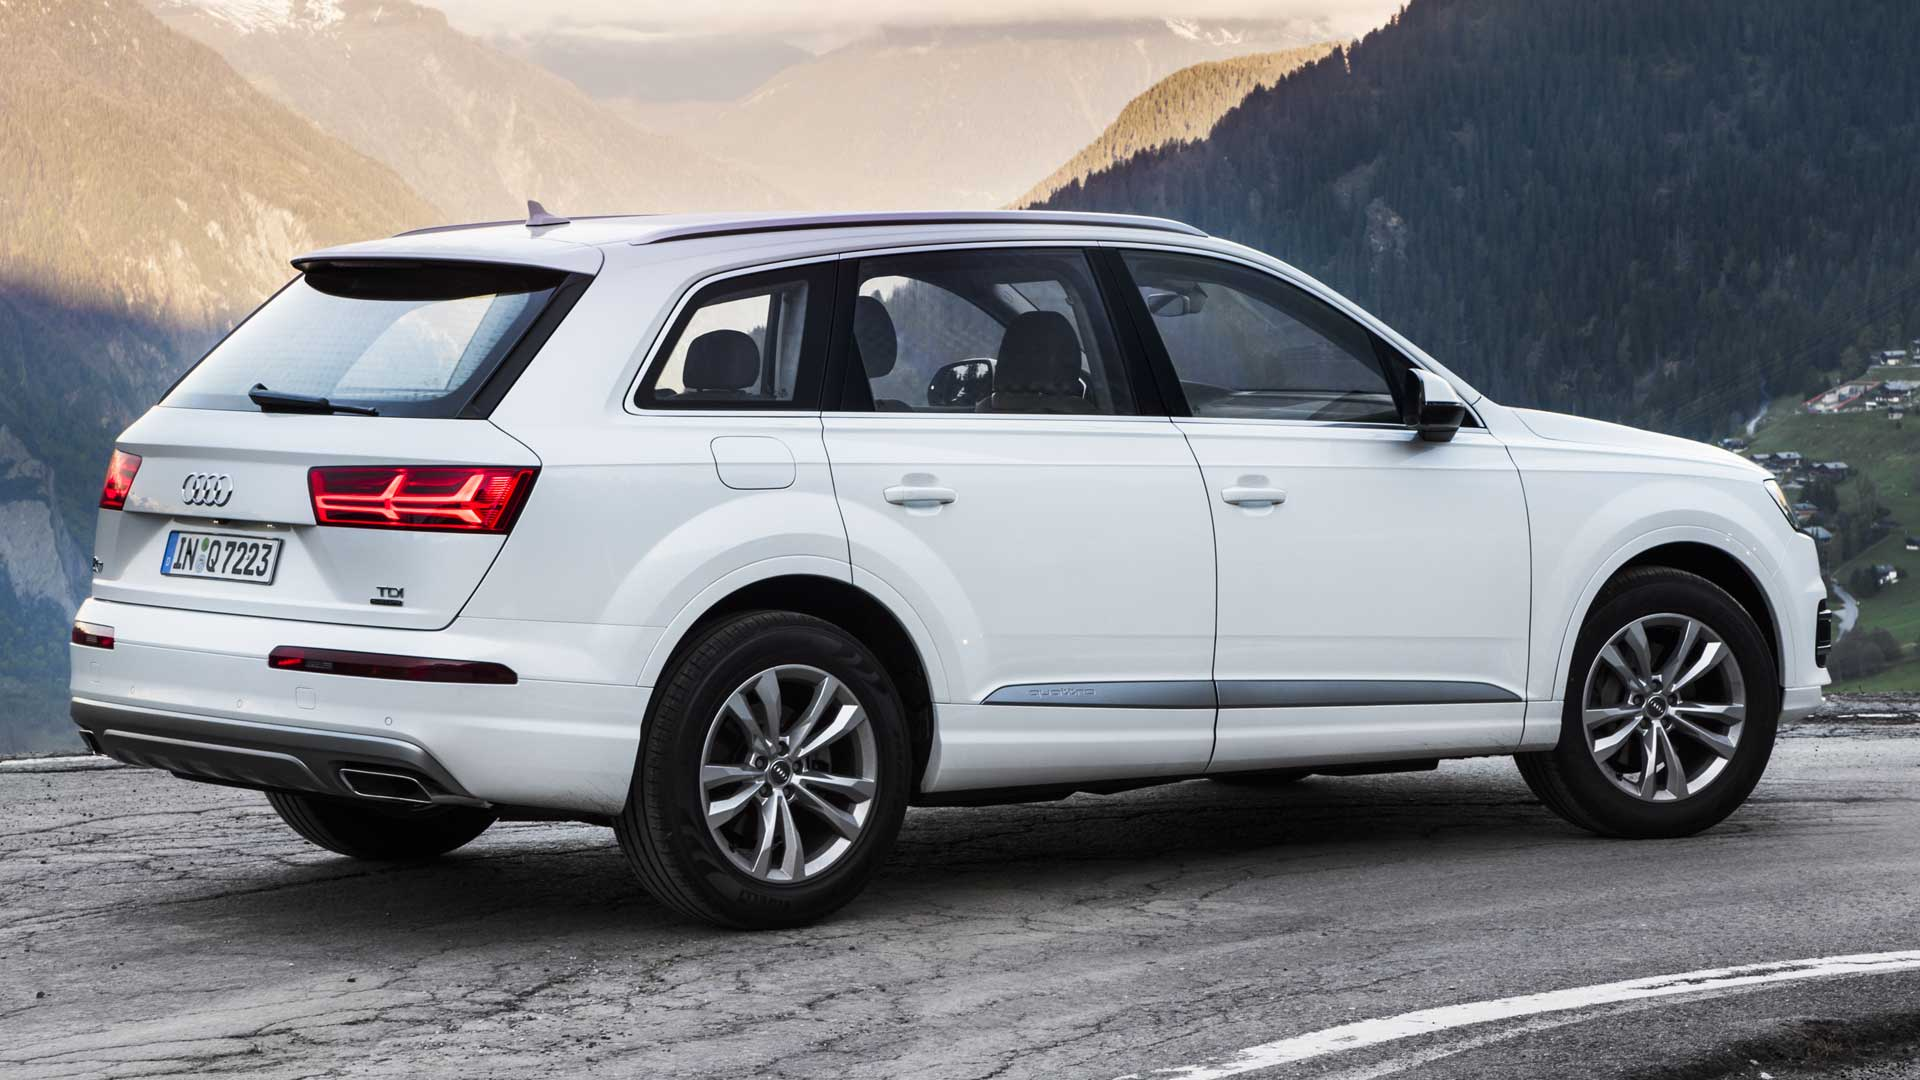 audi q7 2016 technology exterior car photos overdrive. Black Bedroom Furniture Sets. Home Design Ideas